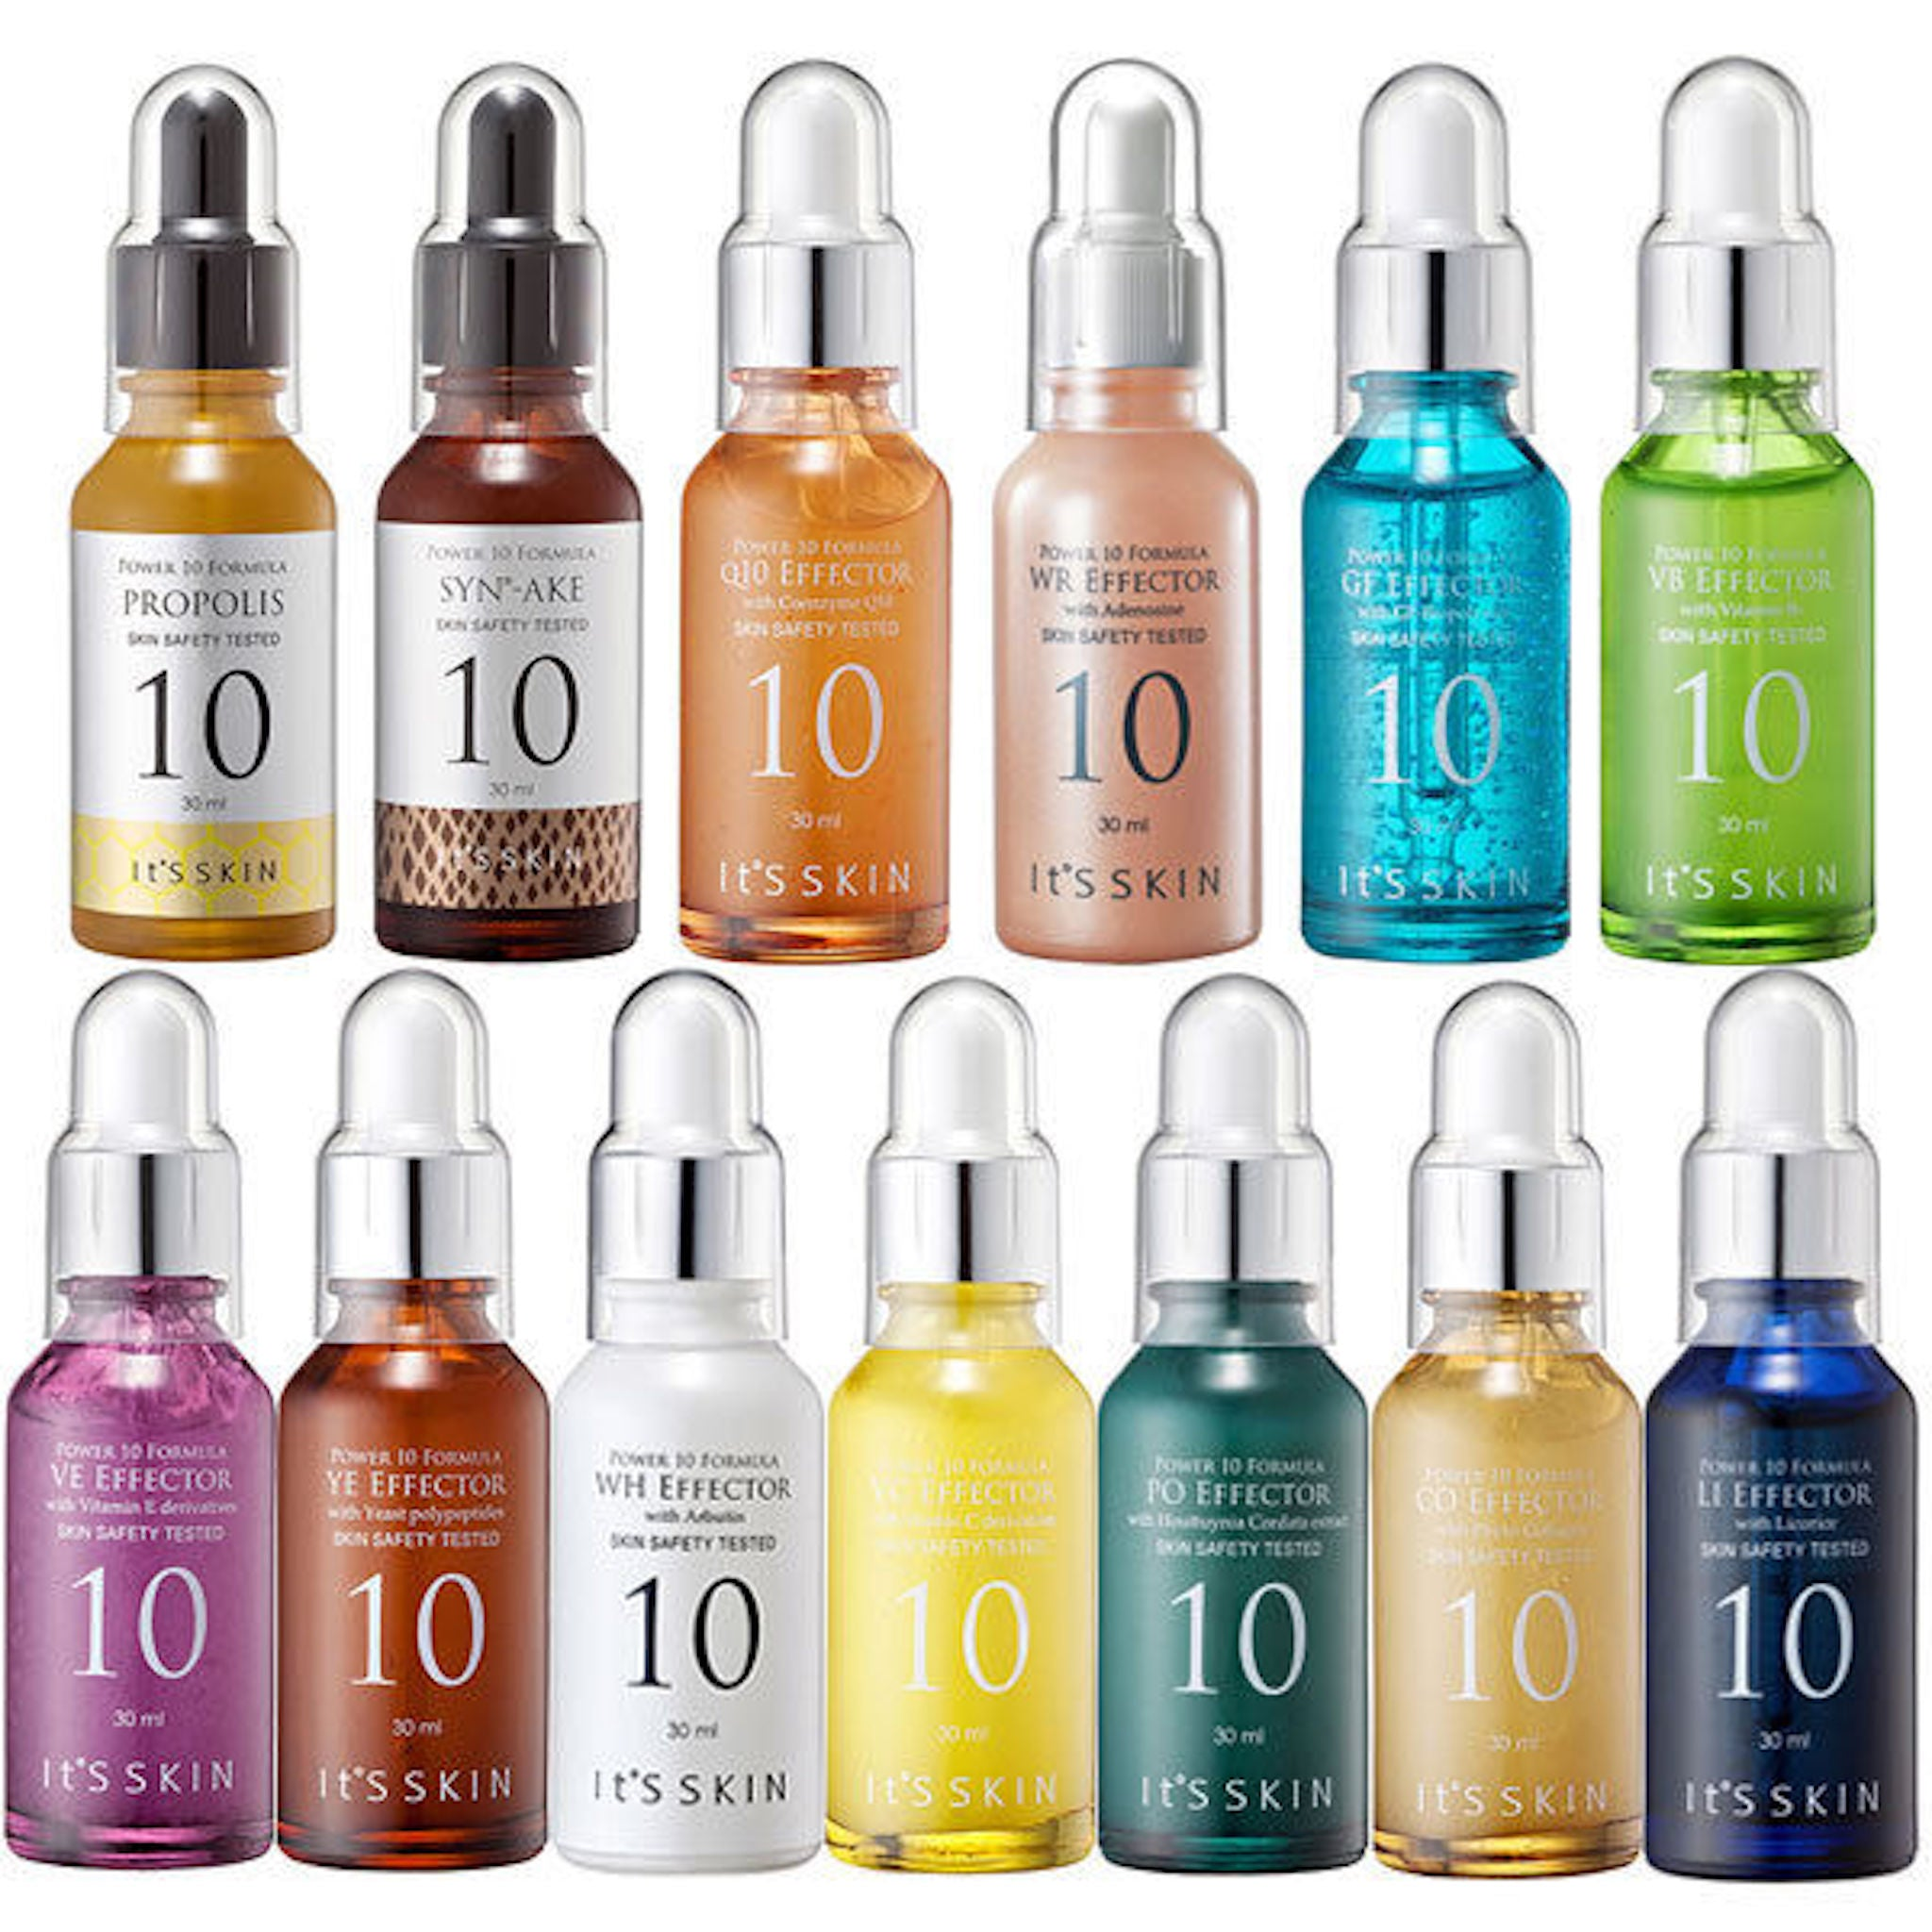 It's Skin Power 10 Formula VE Effector 30ml